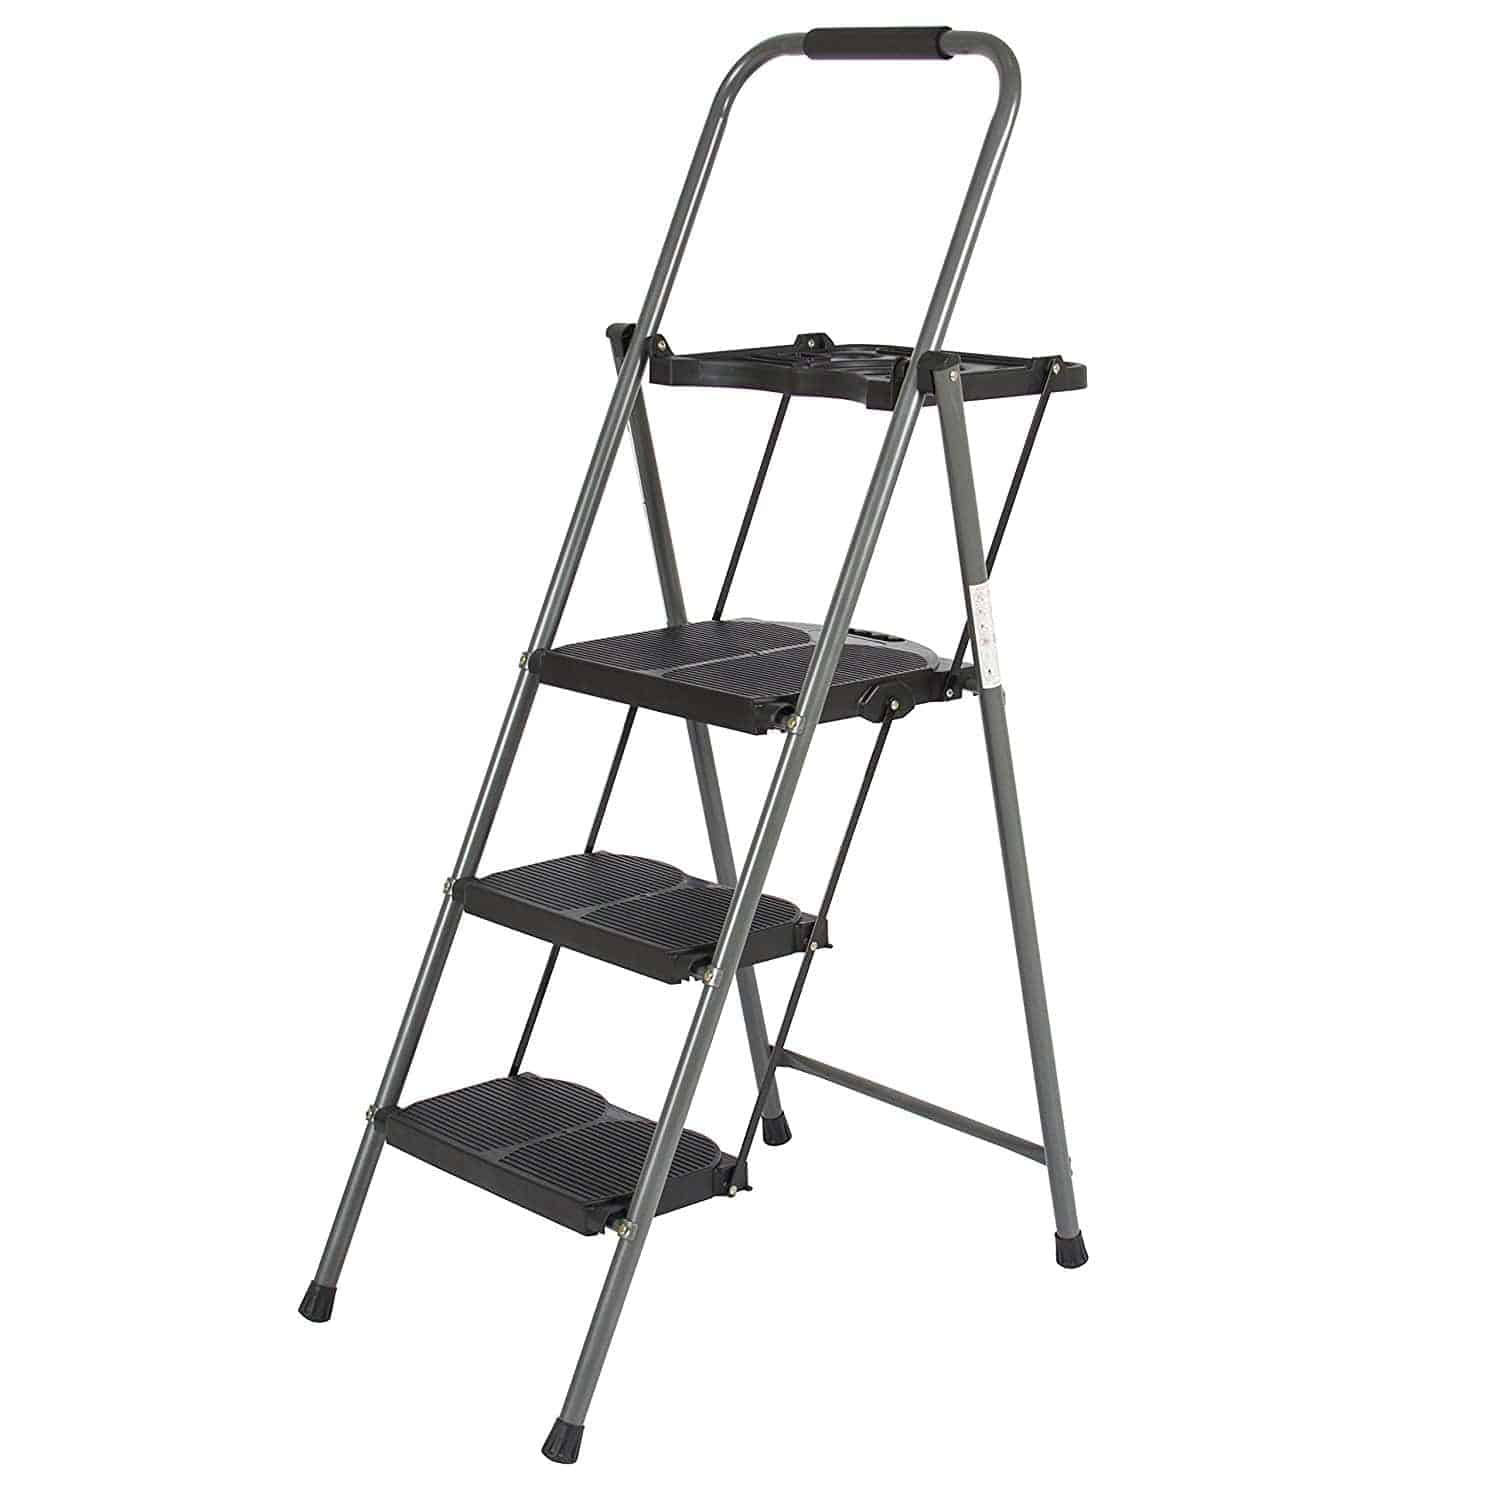 13 Different Types Of Ladders Buying Guide